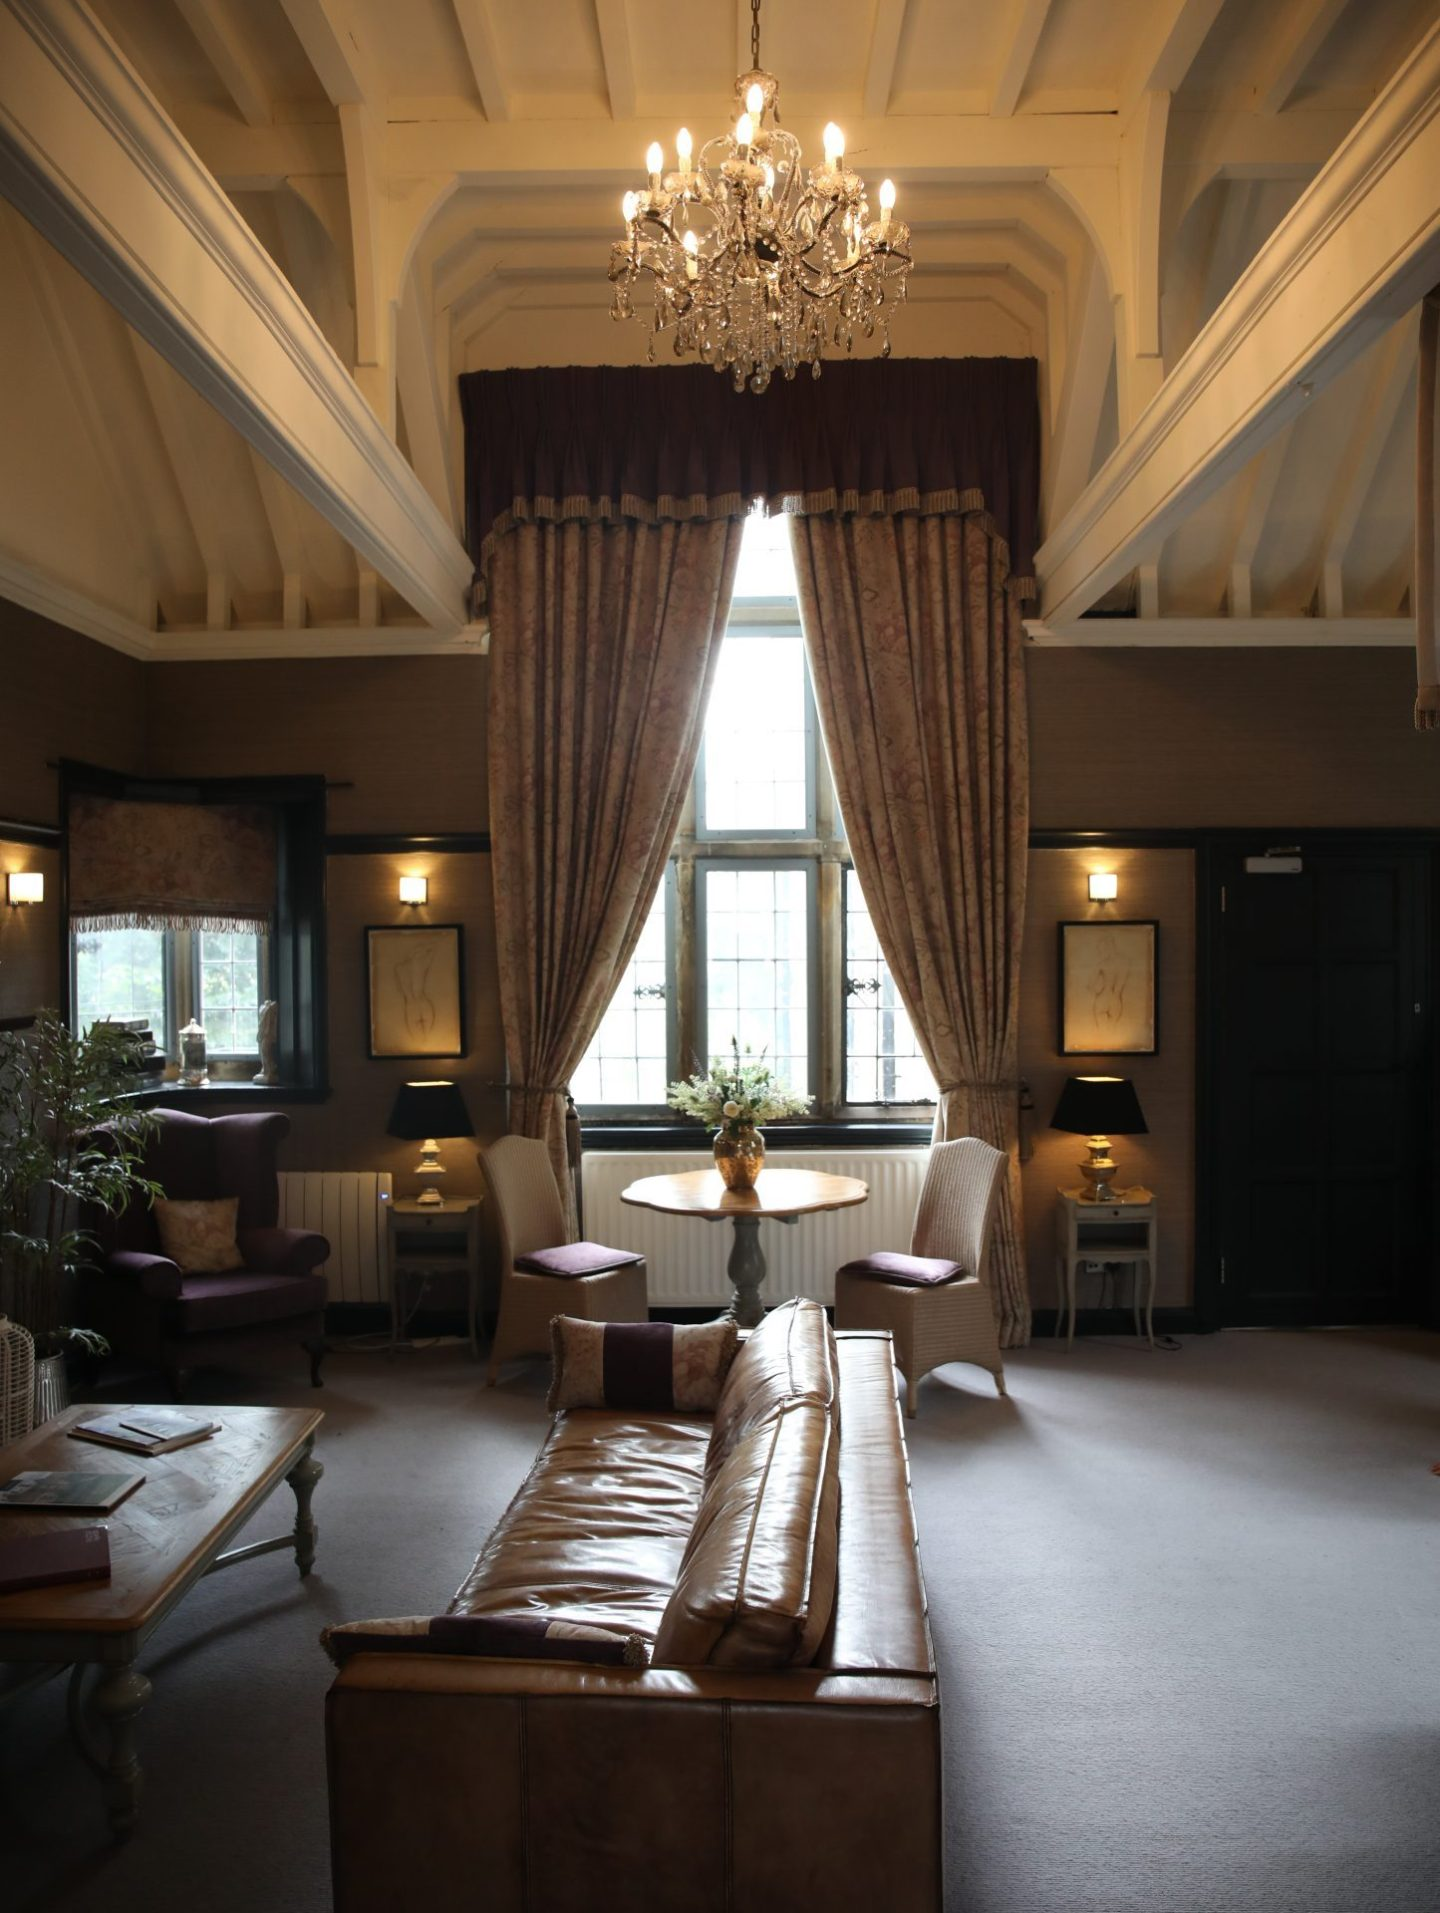 Falcon Manor Hotel Settle Yorkshire Dales